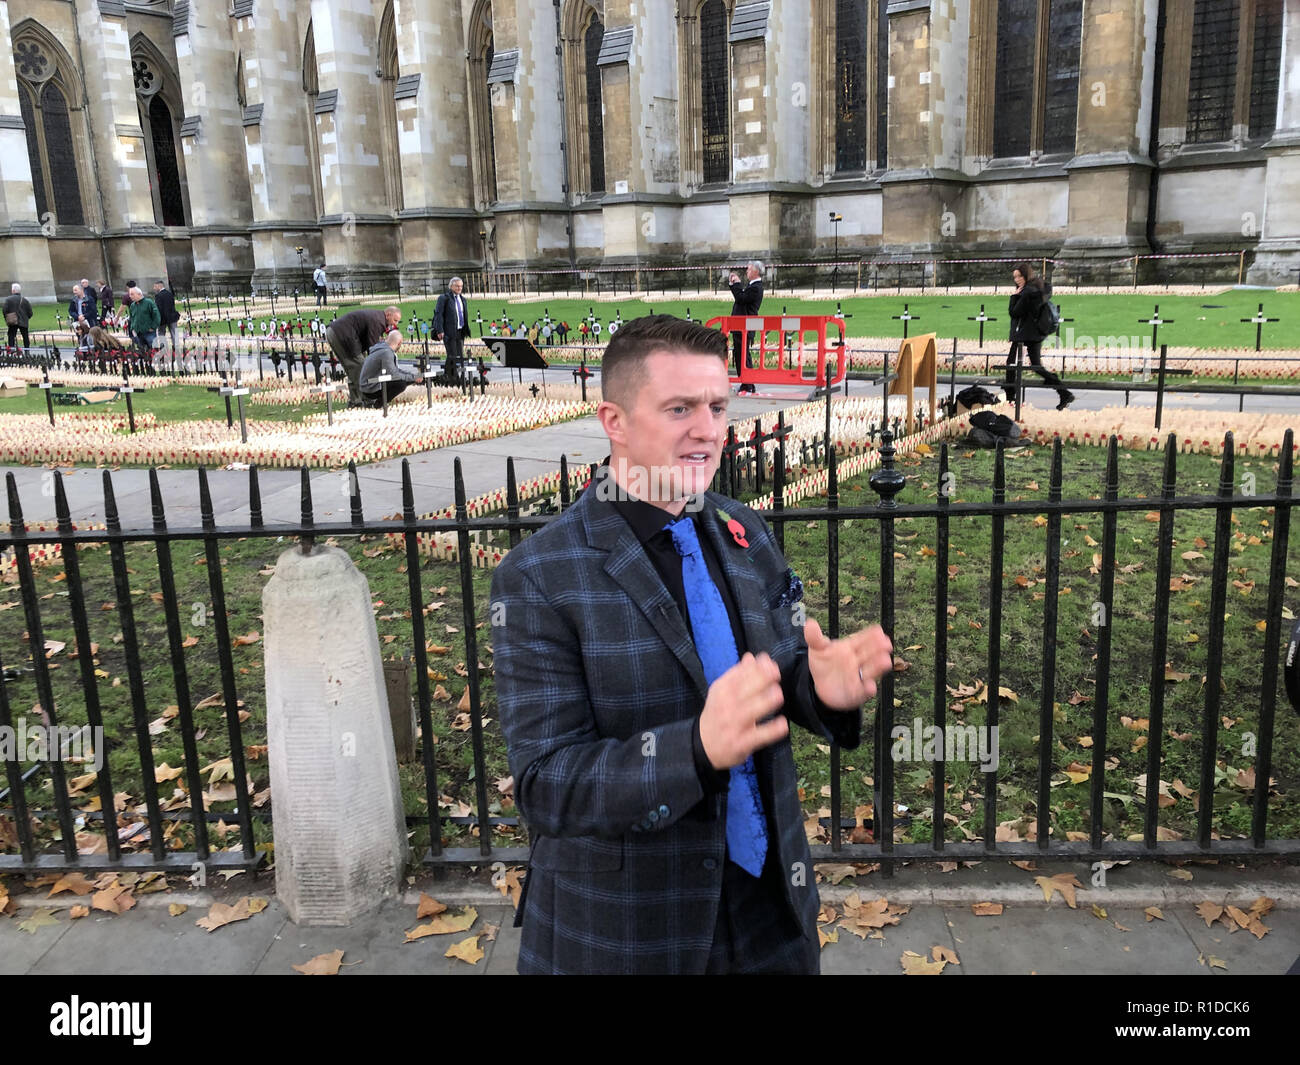 London, UK. 6th Nov, 2018. Tommy Robinson, former EDL leader seen speaking during a visit of a memorial for the 100th anniversary of the first World War in London. Credit: Edward Crawford/SOPA Images/ZUMA Wire/Alamy Live News - Stock Image